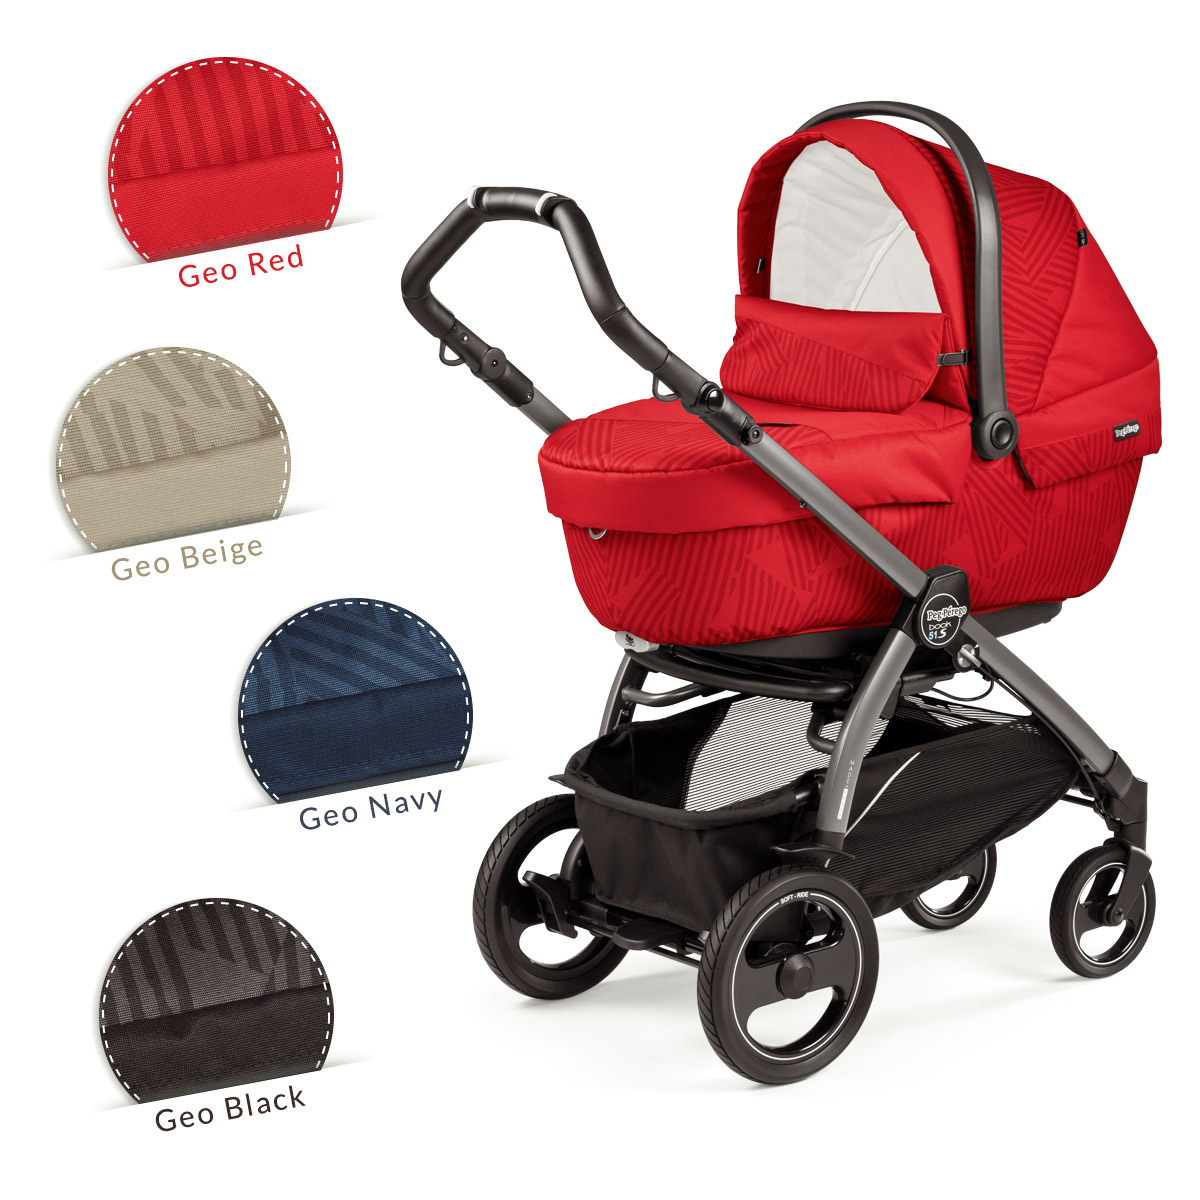 geo collection modular system peg perego